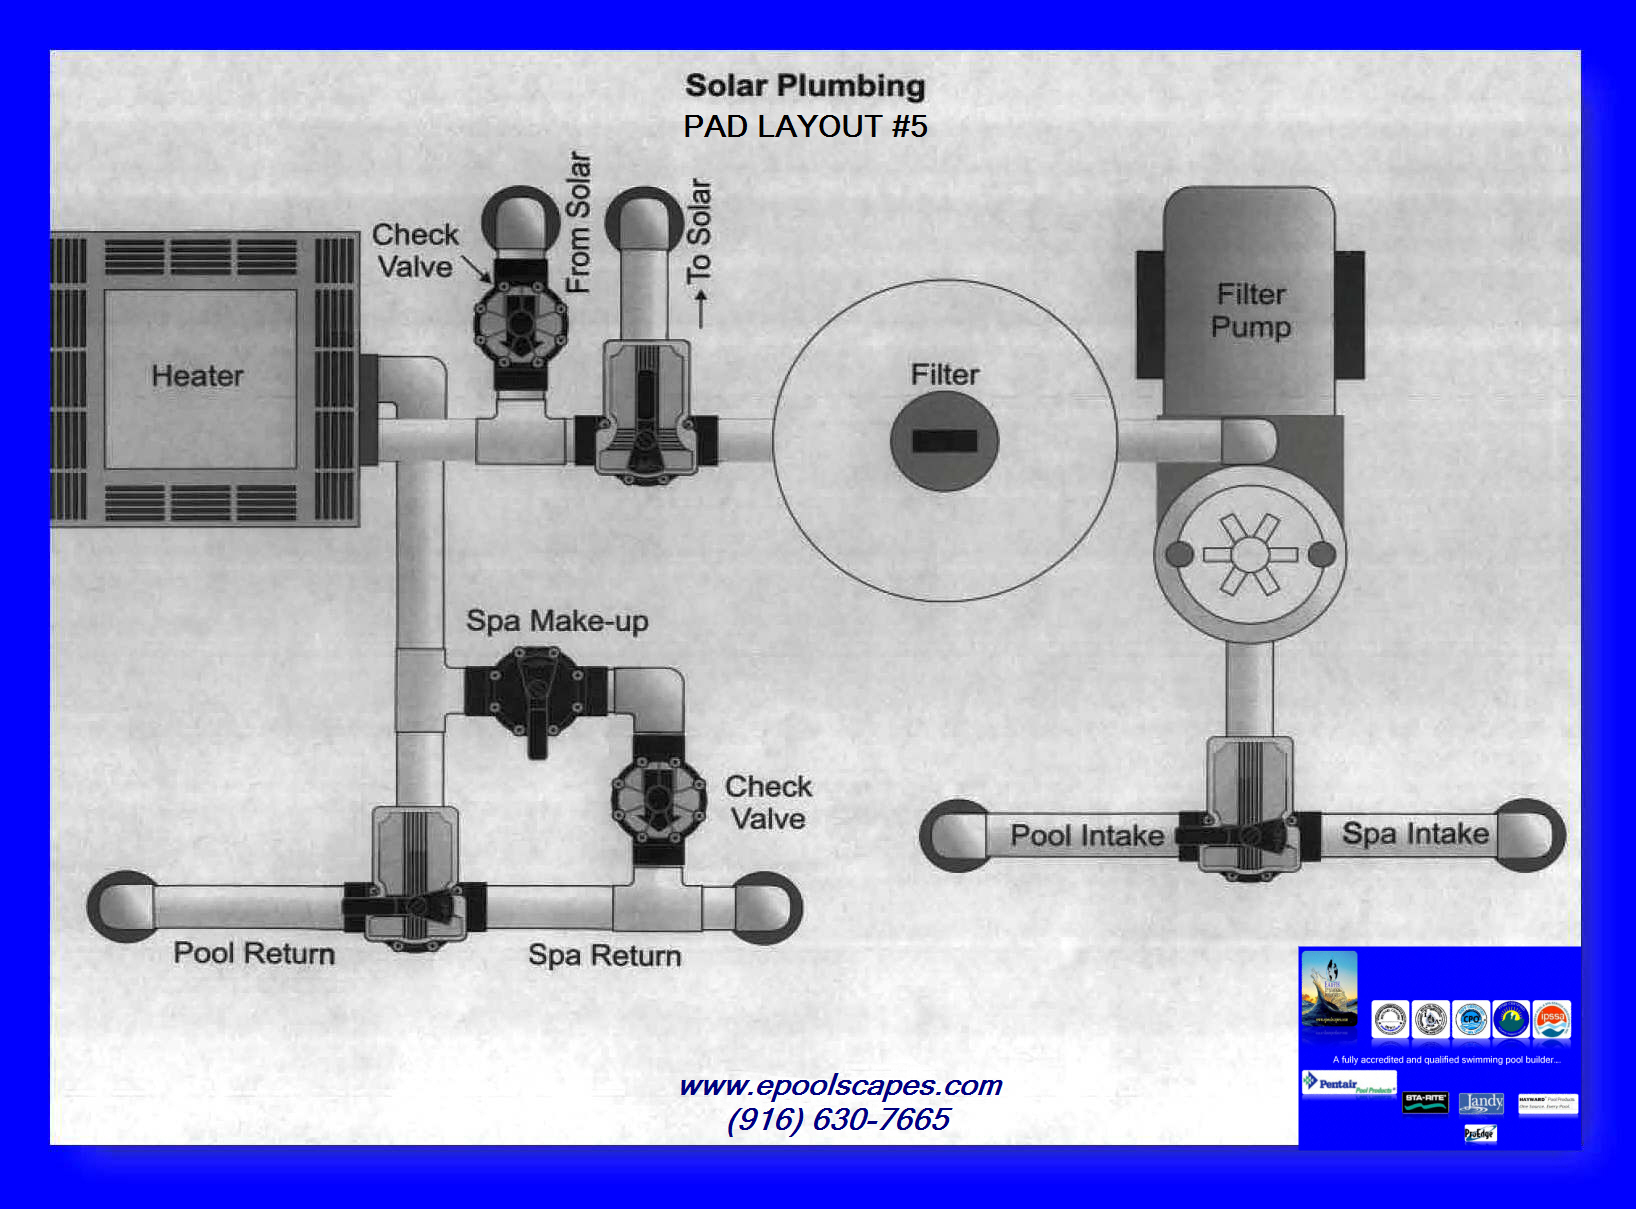 Edpi equipment schematics 5 for Pool equipment design layout